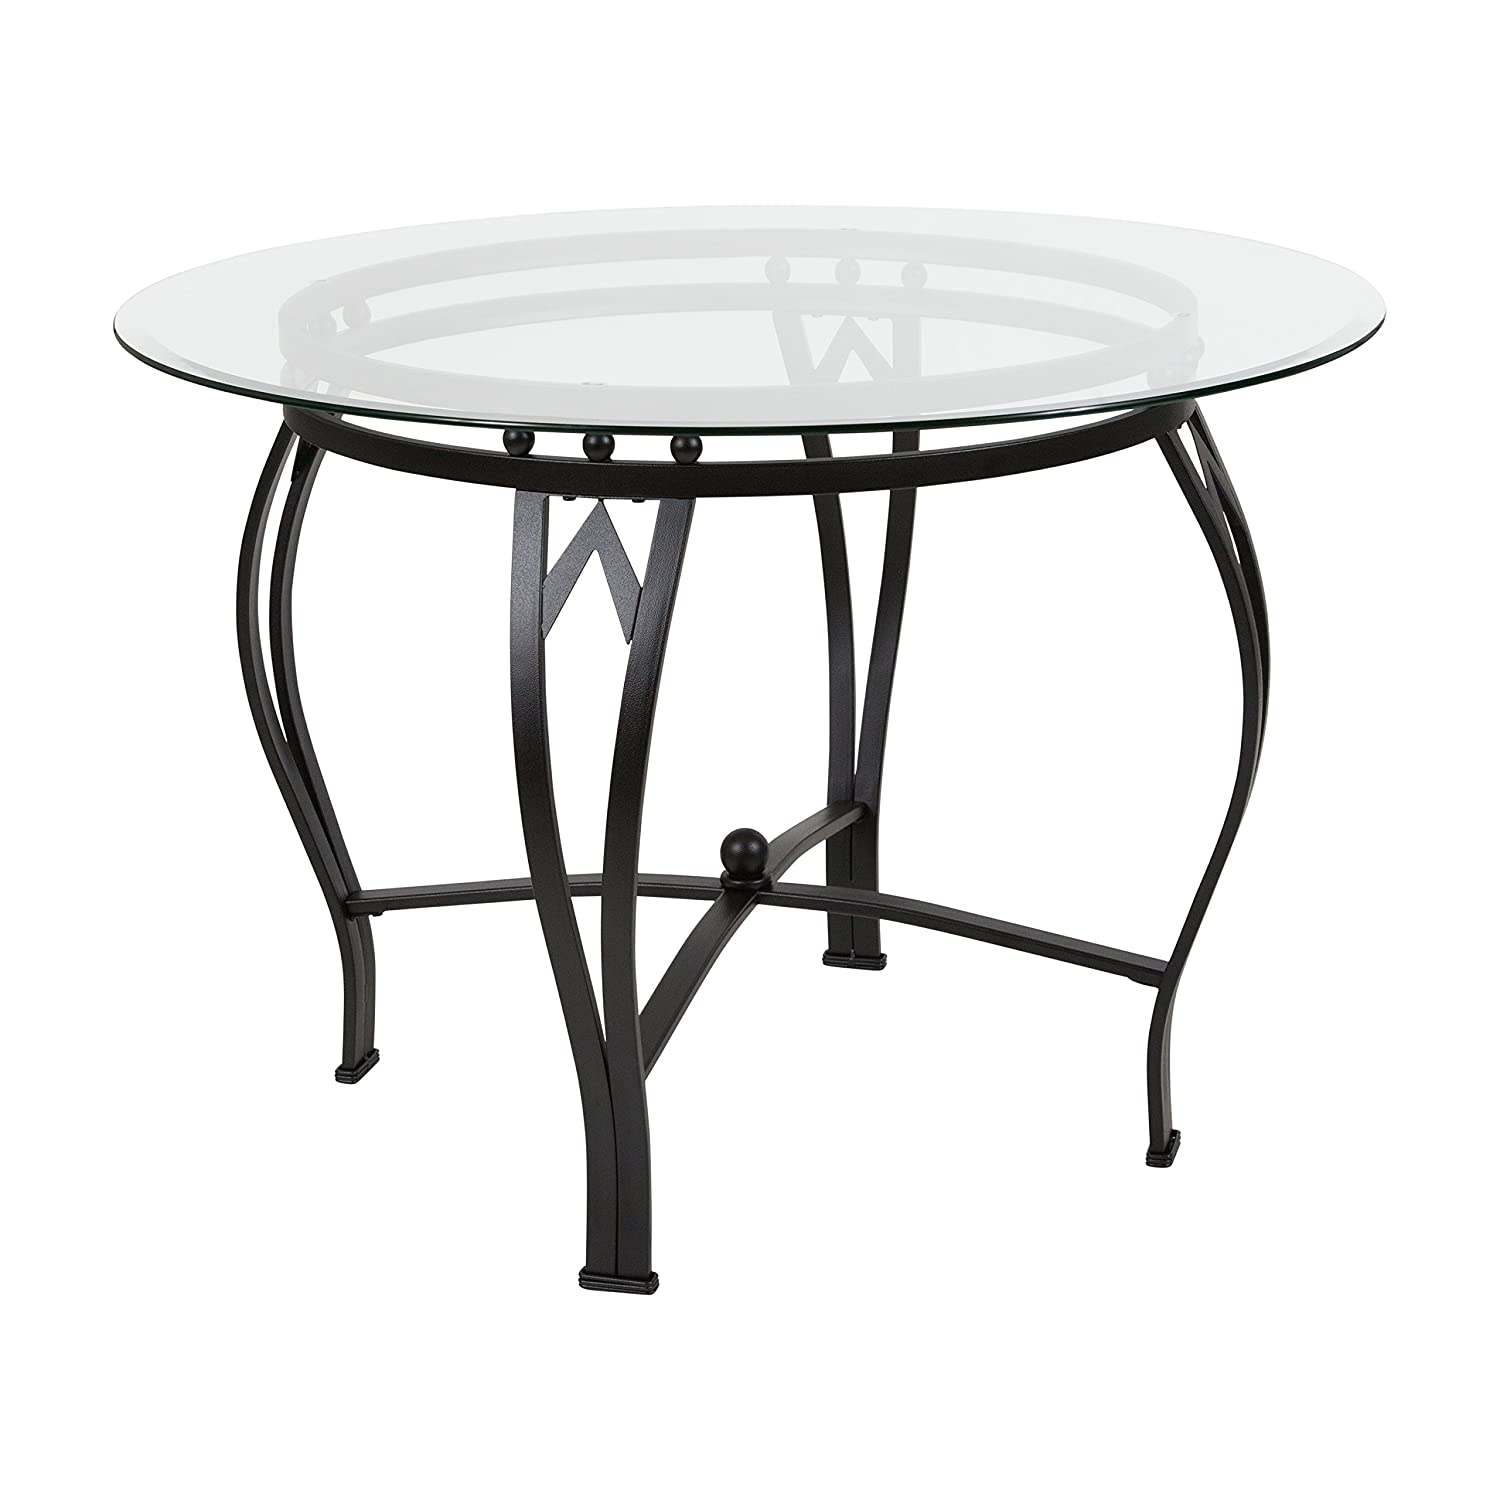 Flash Furniture Syracuse 48 Round Glass Dining Table with Black Metal Frame